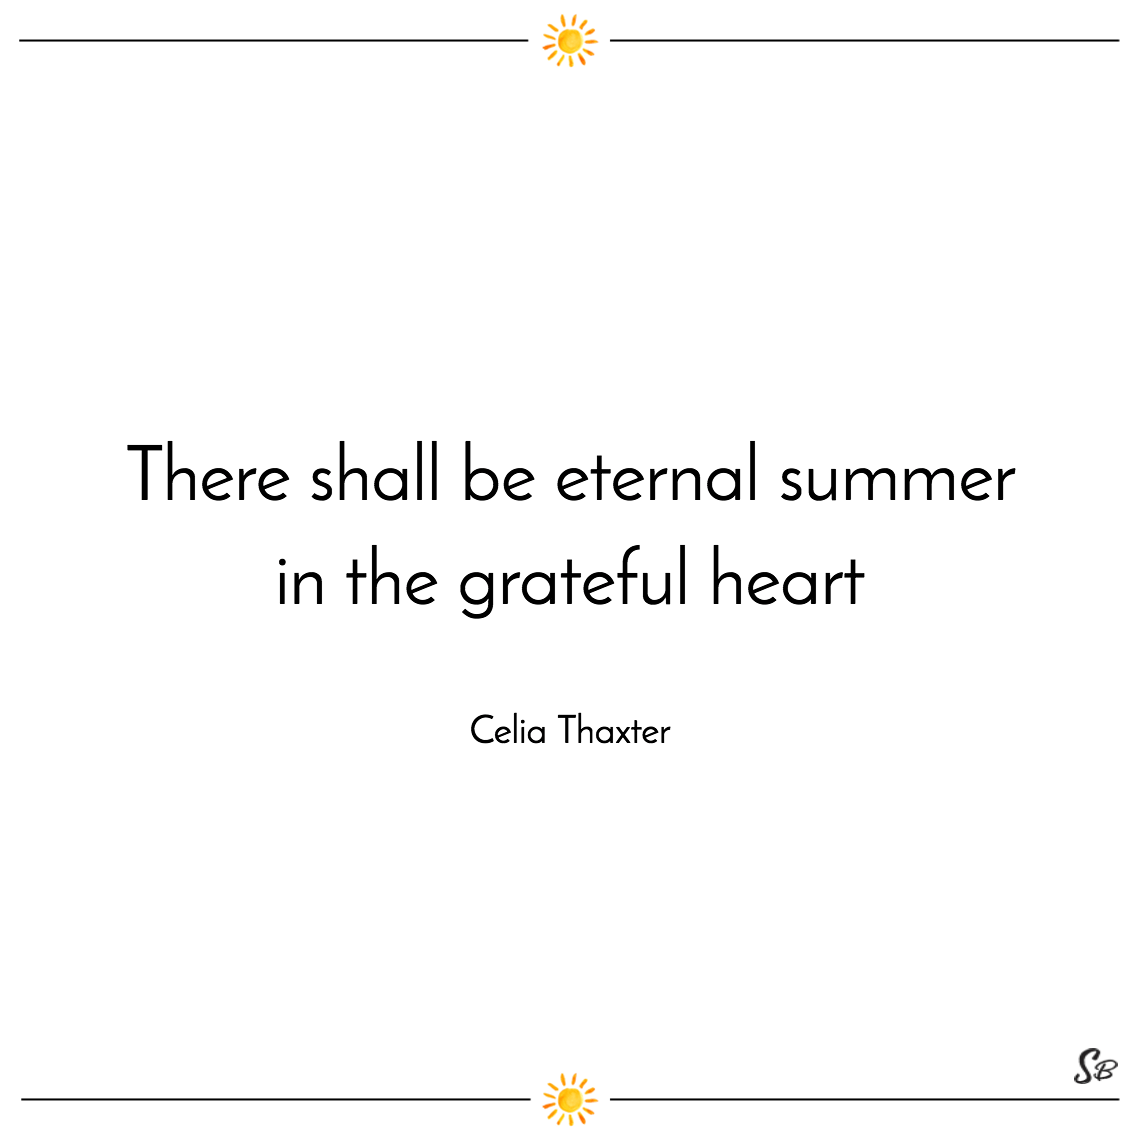 There shall be eternal summer in the grateful heart celia thaxter